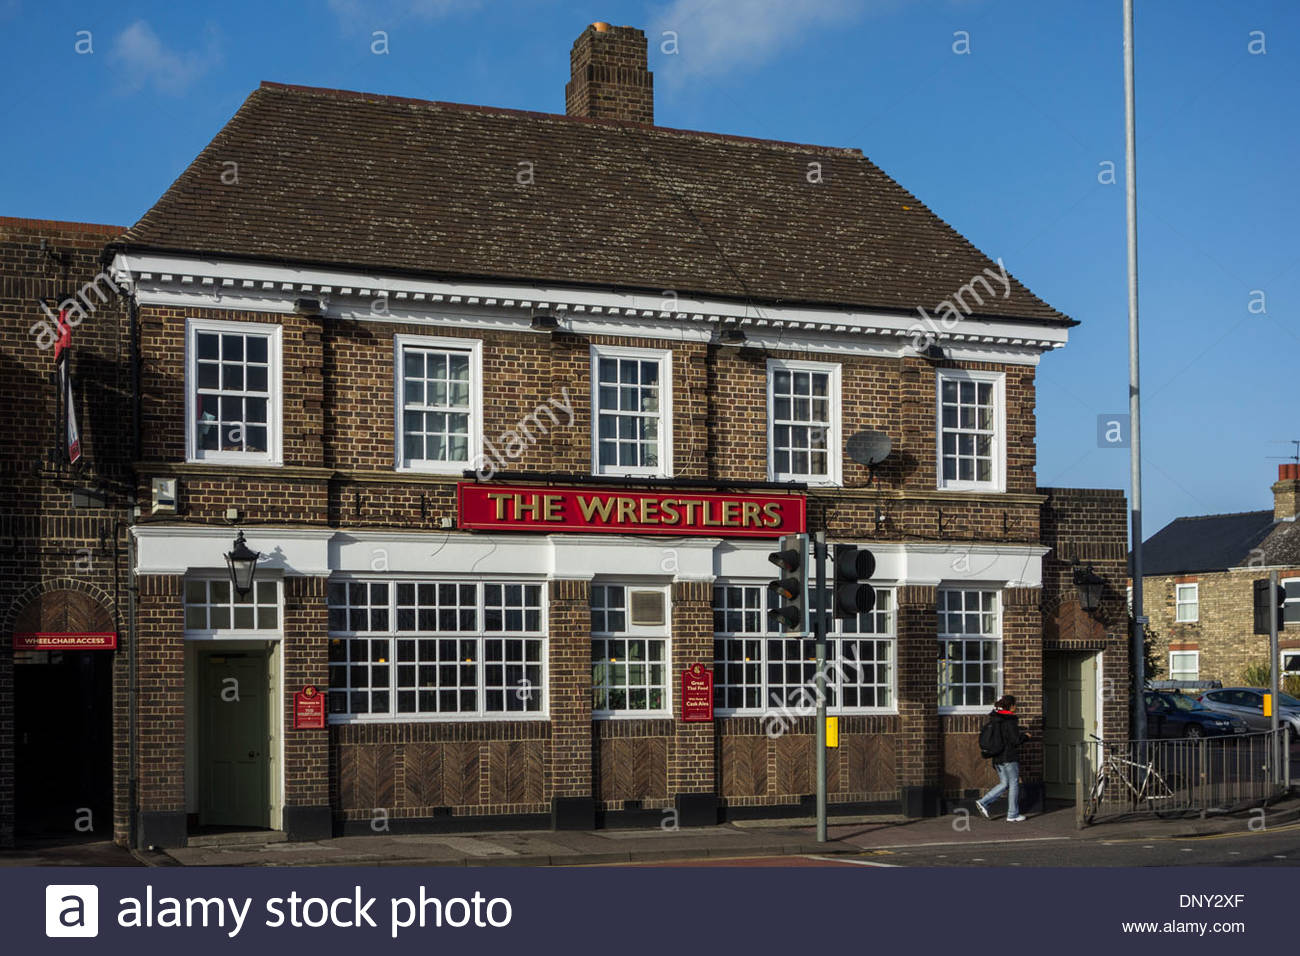 The Wrestlers public house in Newmarket Road, Cambridge, England, selling Thai Food and Cask Ales - Stock Image